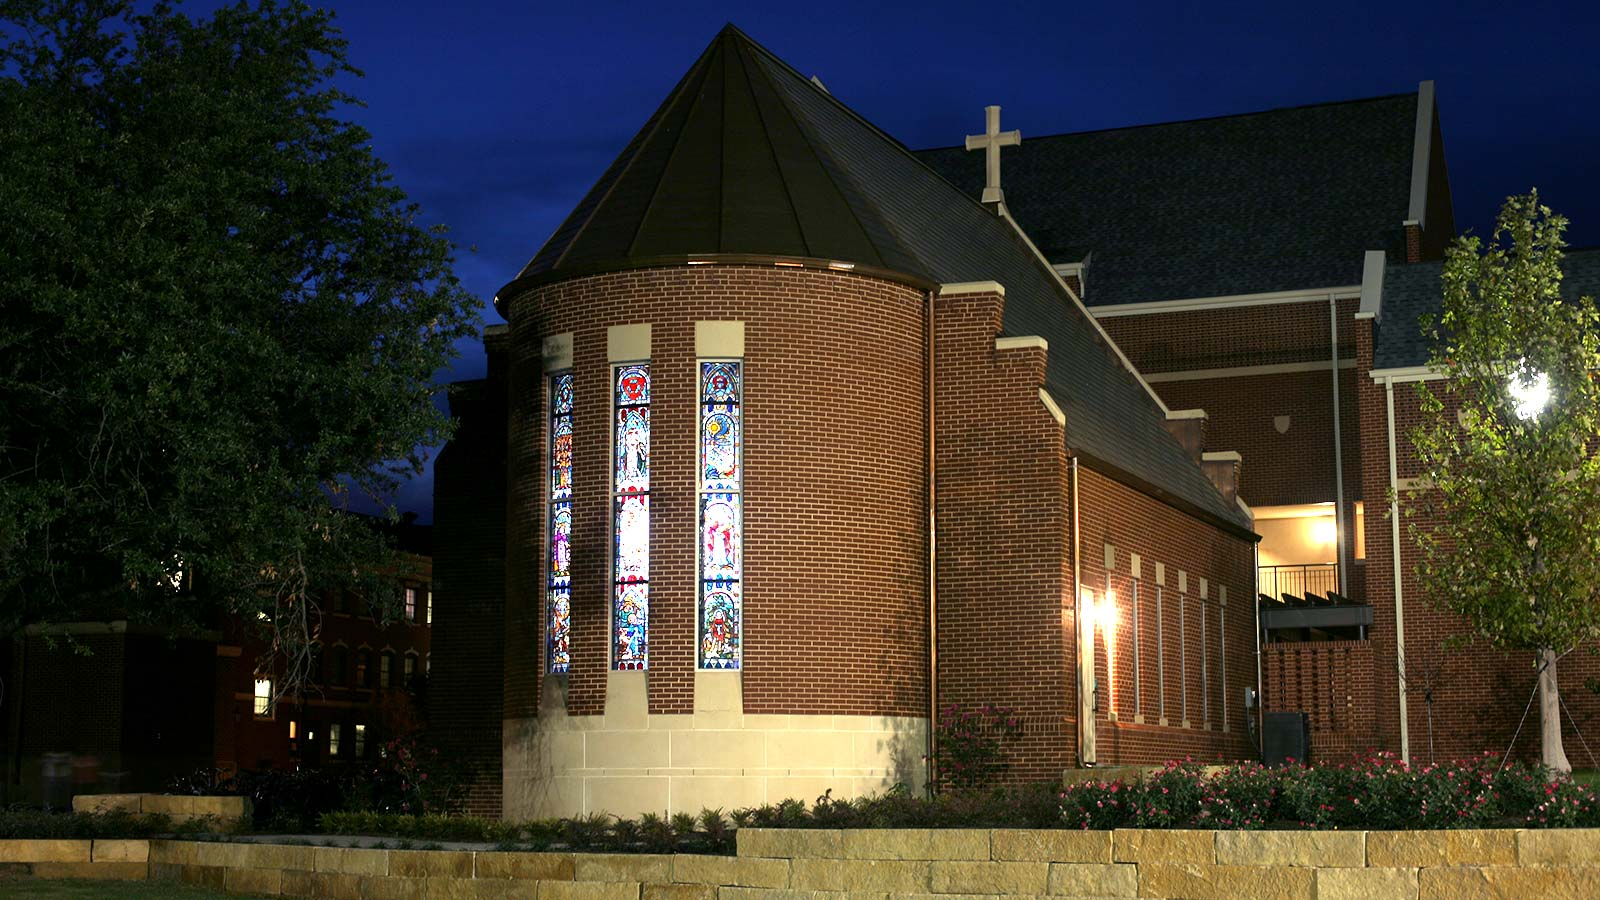 The beautiful Robbins Chapel sits in the Brooks Village between Brooks College and Brooks Flats. The chapel serves the Brooks community as a place to gather for prayer, service, and quiet contemplation.